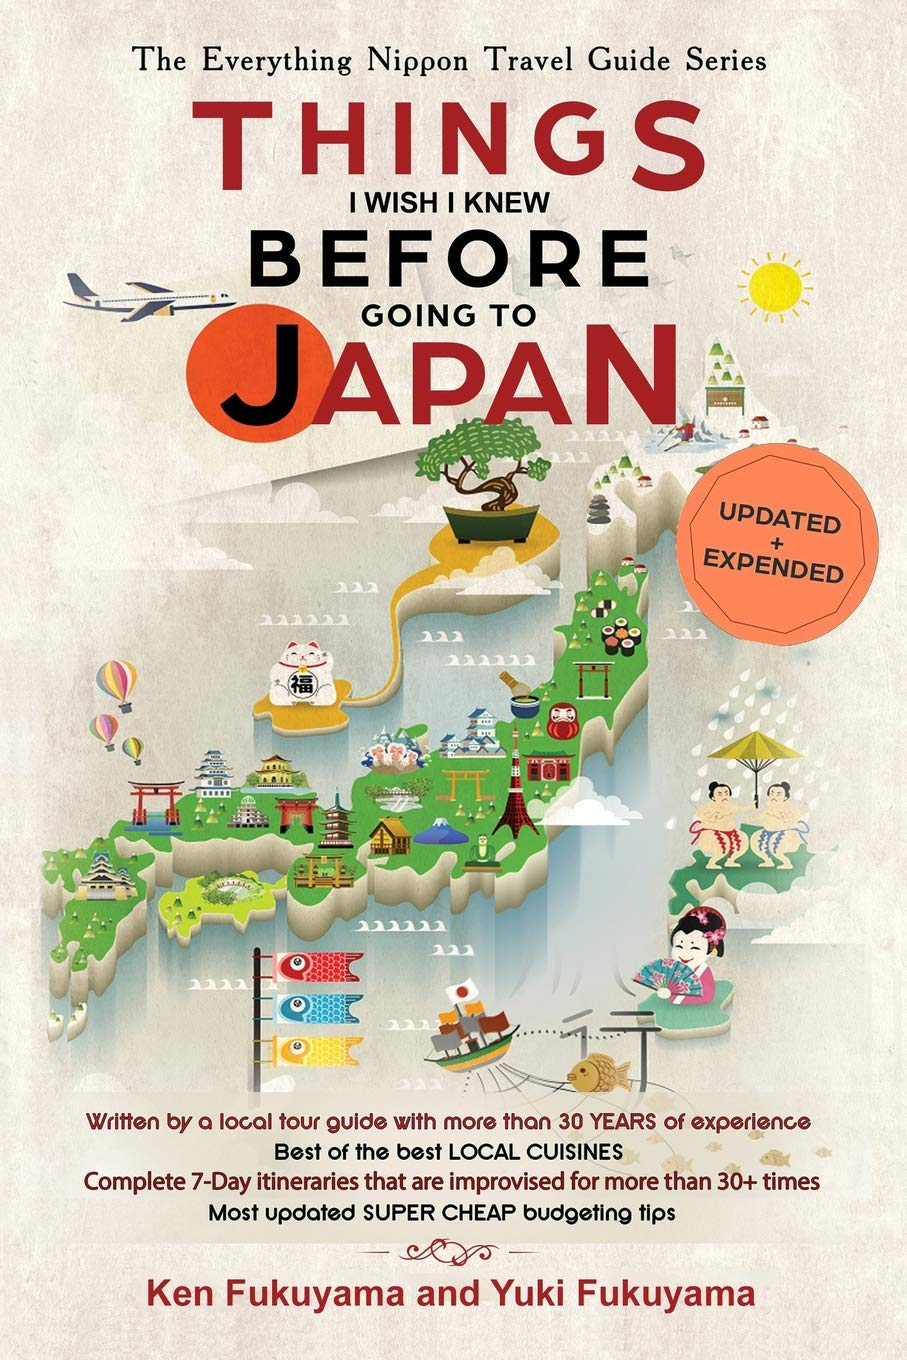 Japan Travel Guide: Things I Wish I Knew Before Going To Japan por Ken Fukuyama